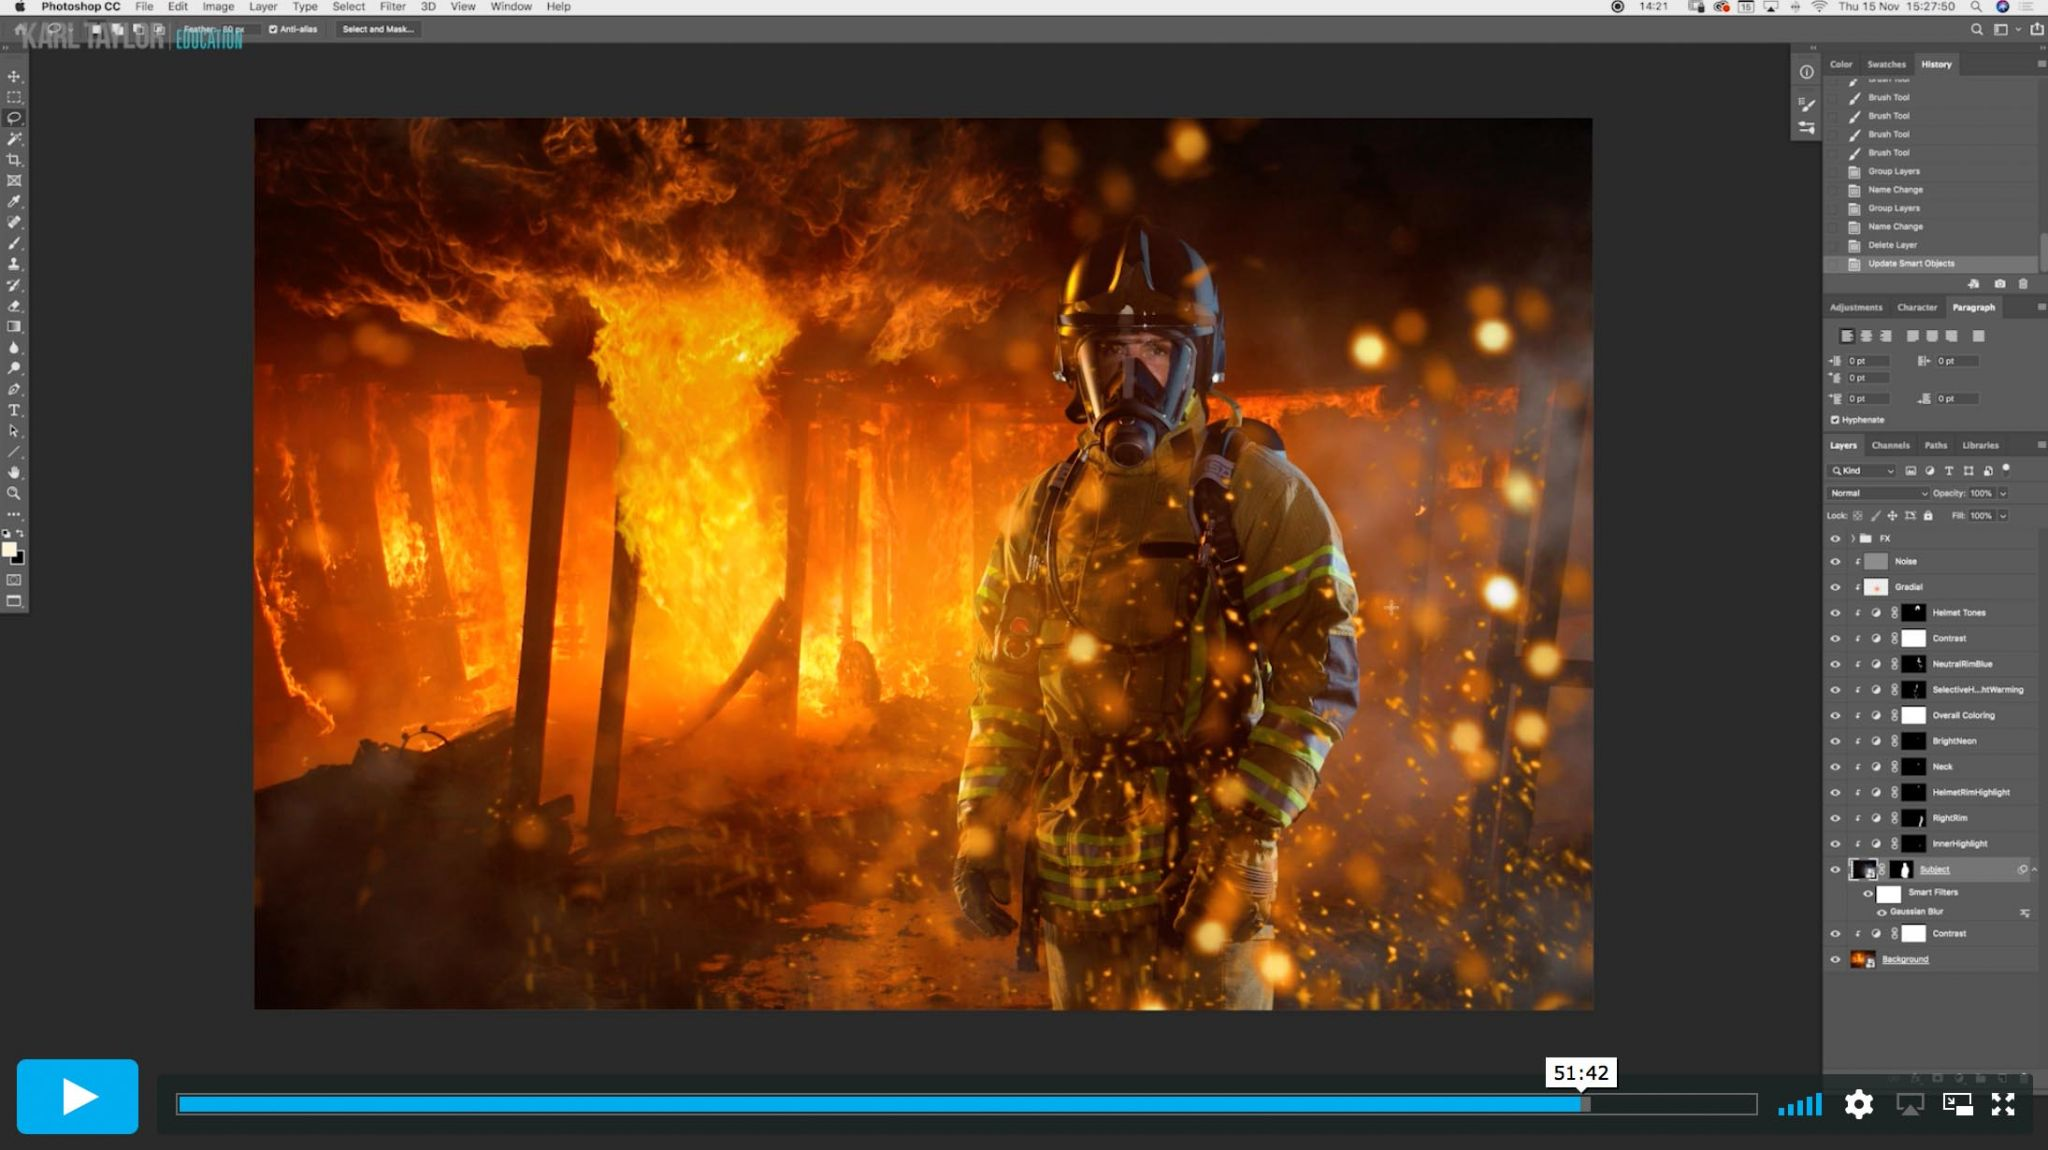 Generating sparks and fire using Photoshop tools